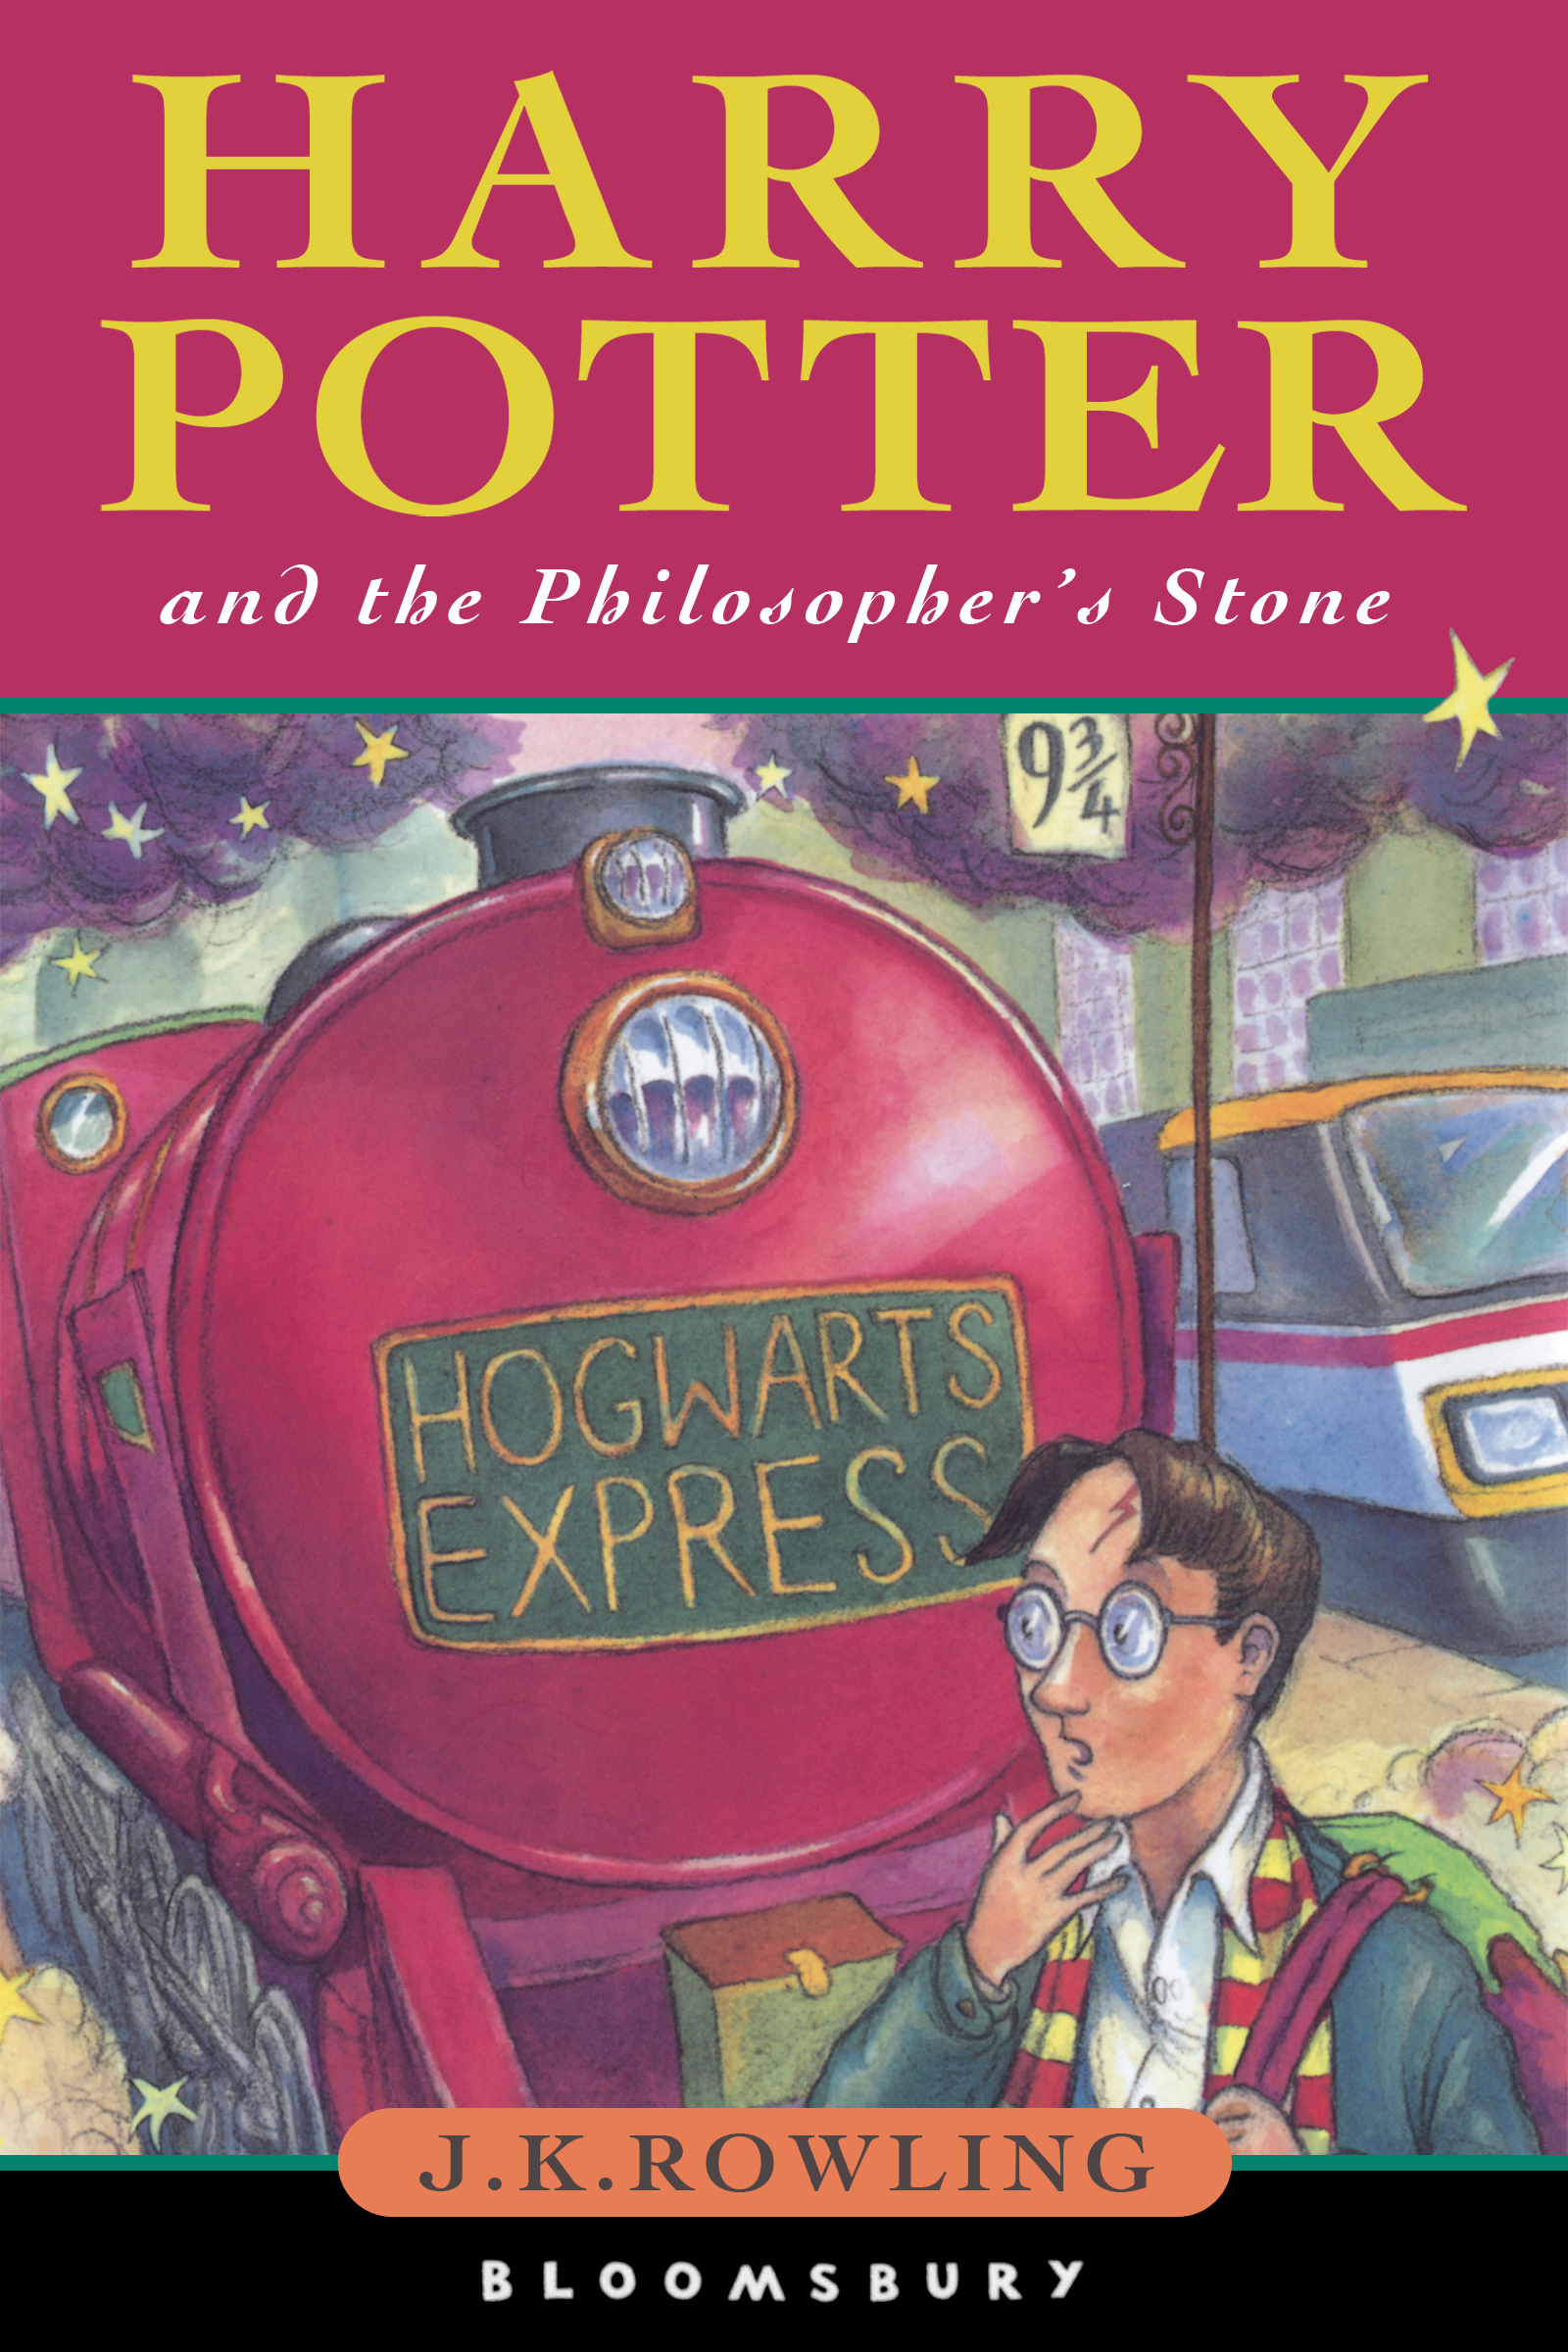 Harry Potter Book Error : Harry potter books with a rare typo are being valued at £